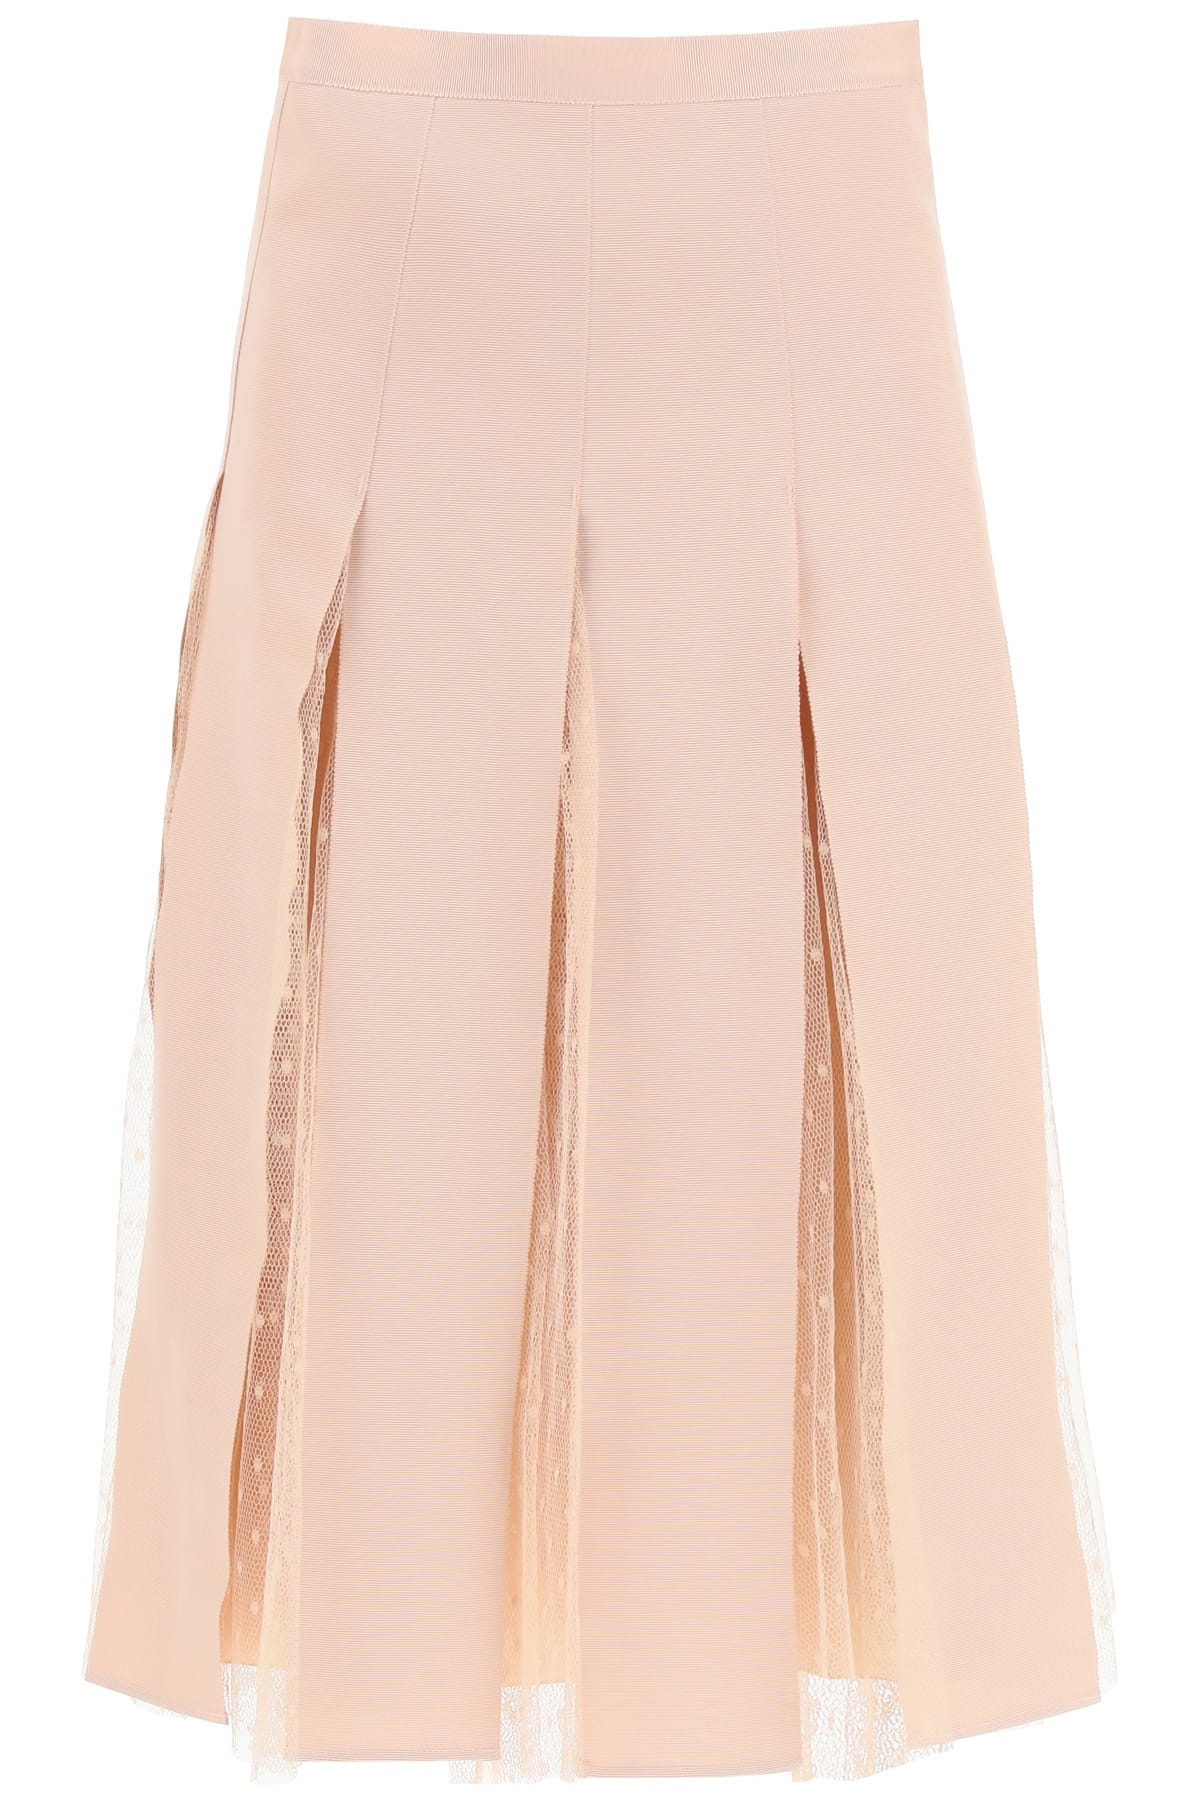 RED VALENTINO MIDI SKIRT IN GROSGRAIN AND TULLE 40 Pink